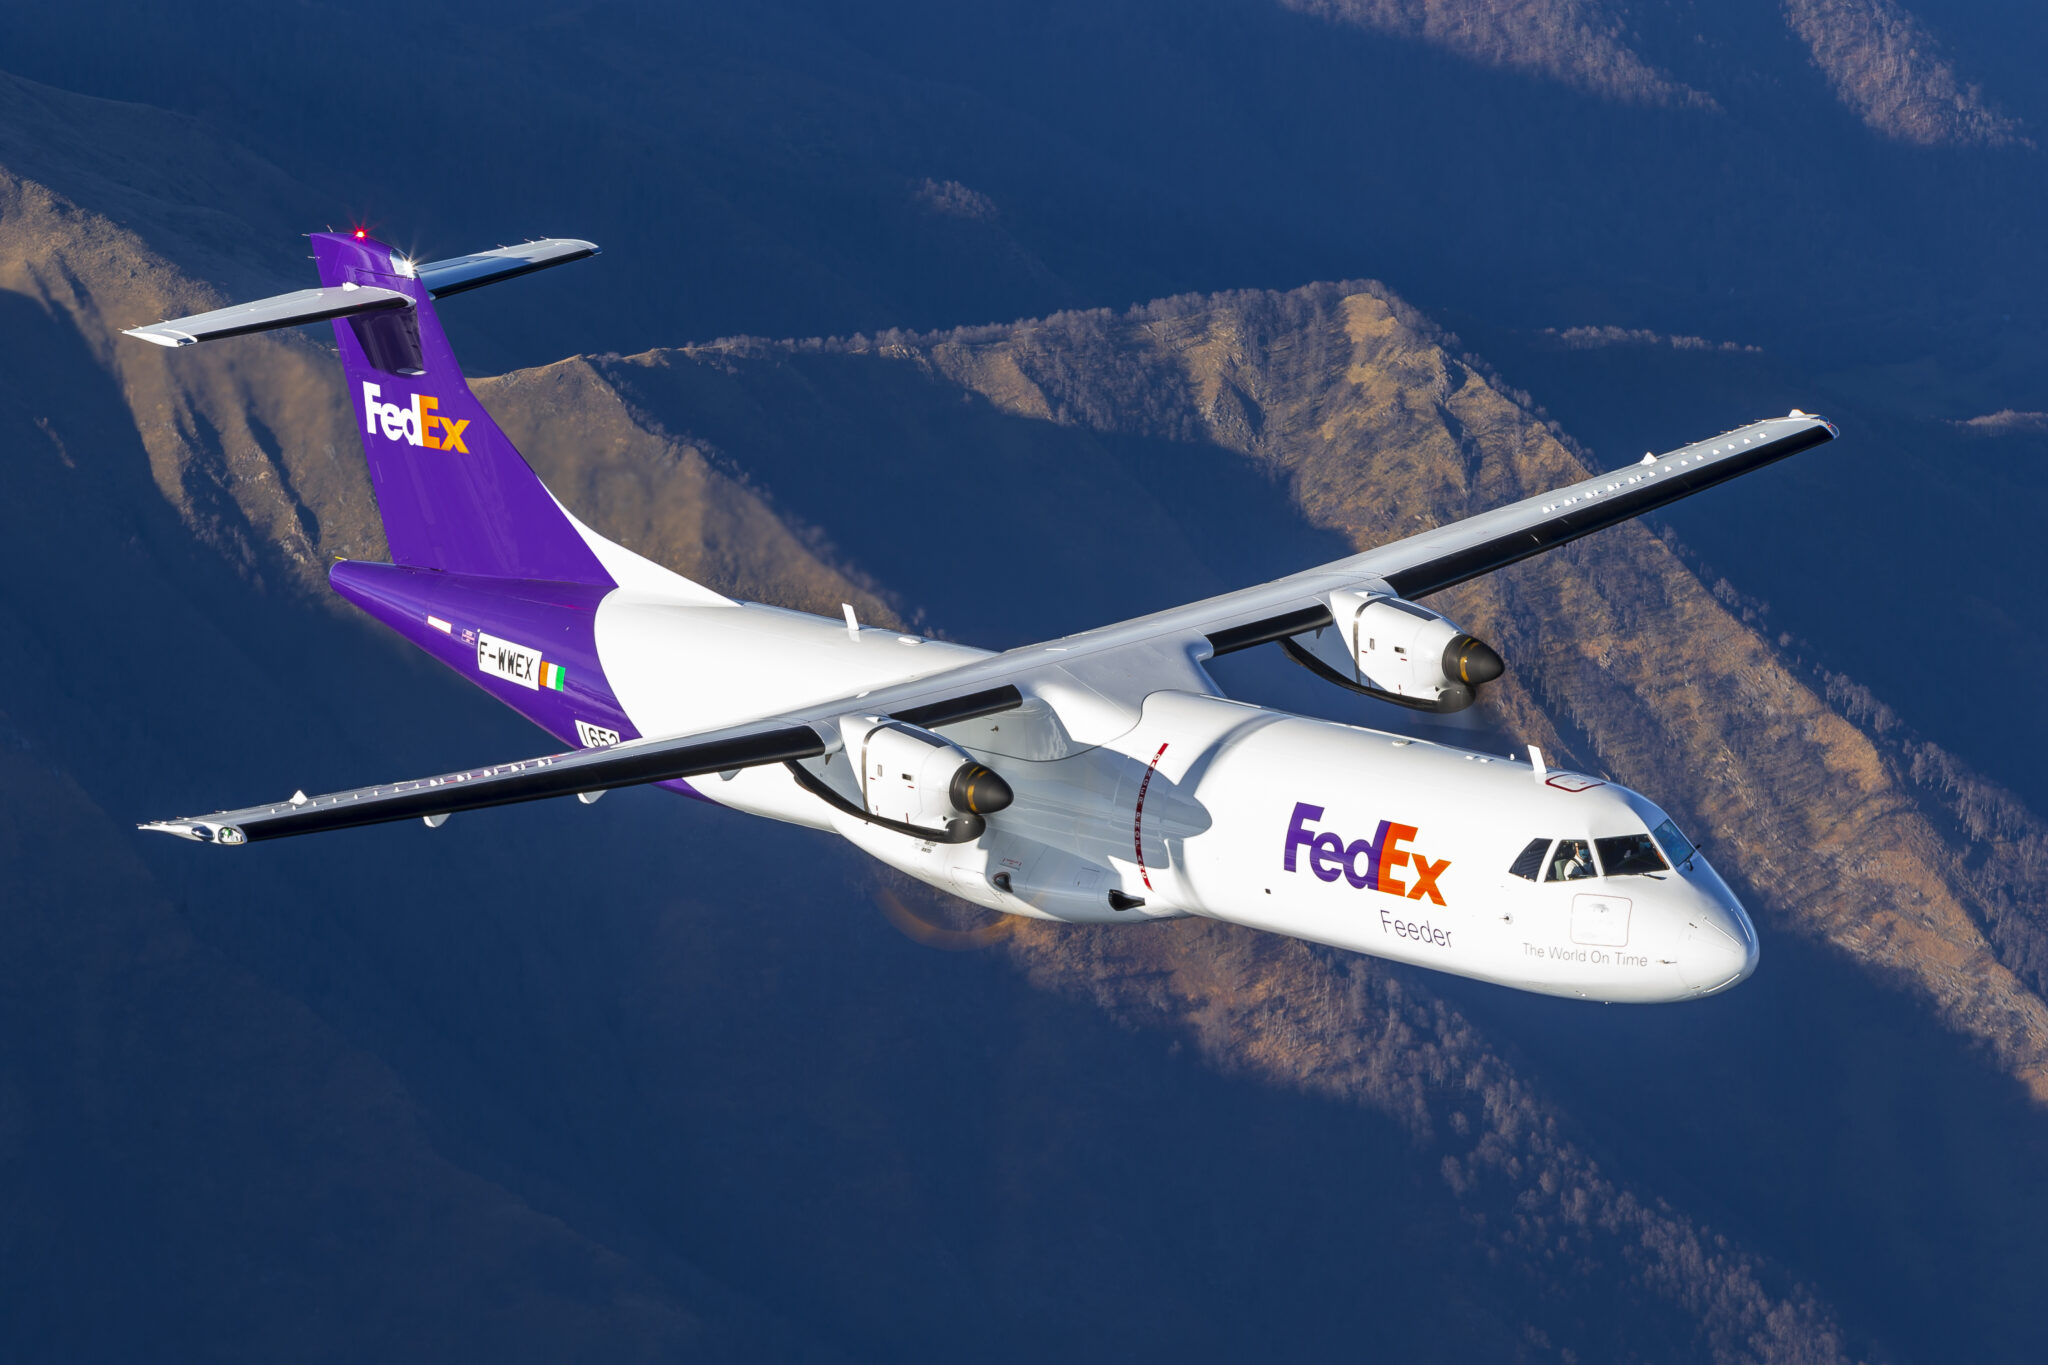 FedEx Express Further Modernises Fleet With Delivery of First Purpose-Built Regional ATR Freighter